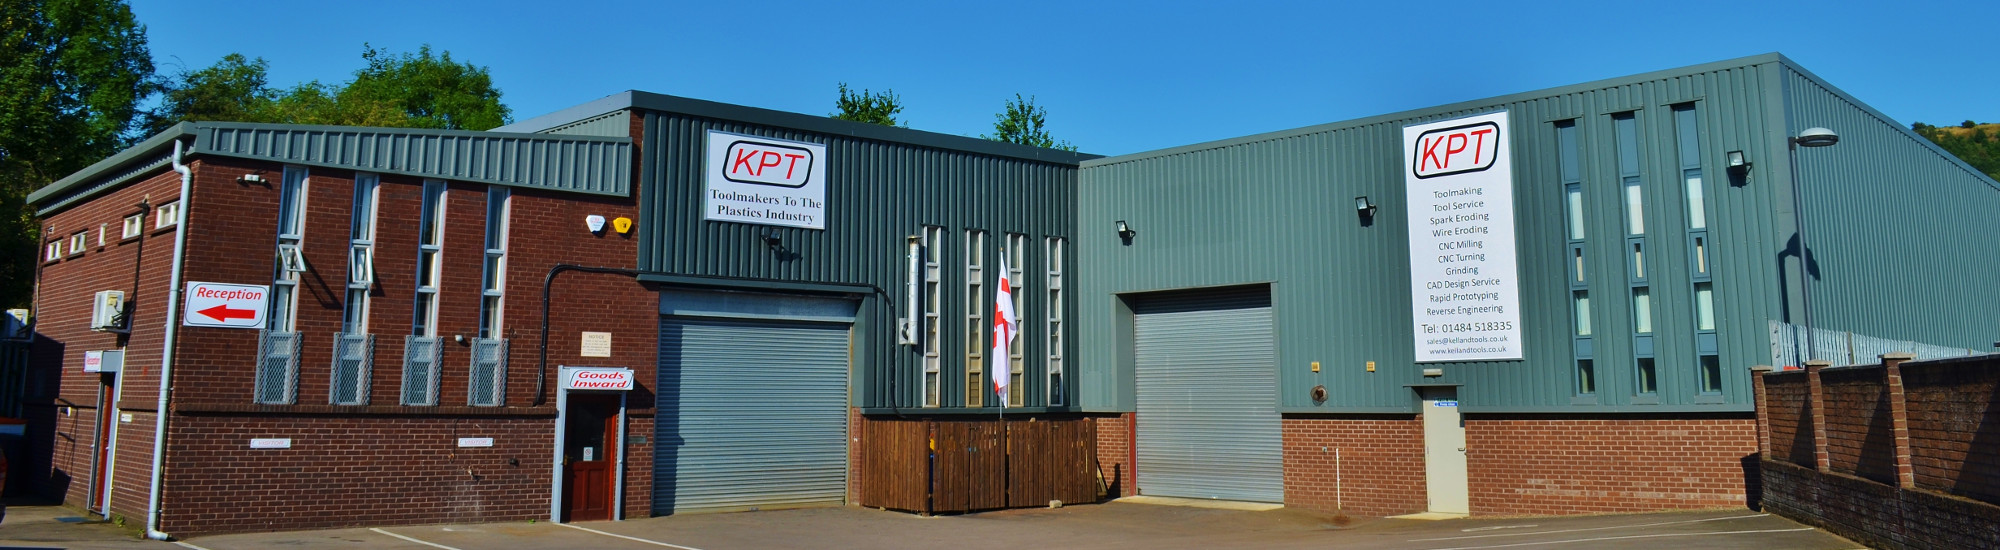 KPT Toolmaker Facility - Huddersfield, West Yorkshire